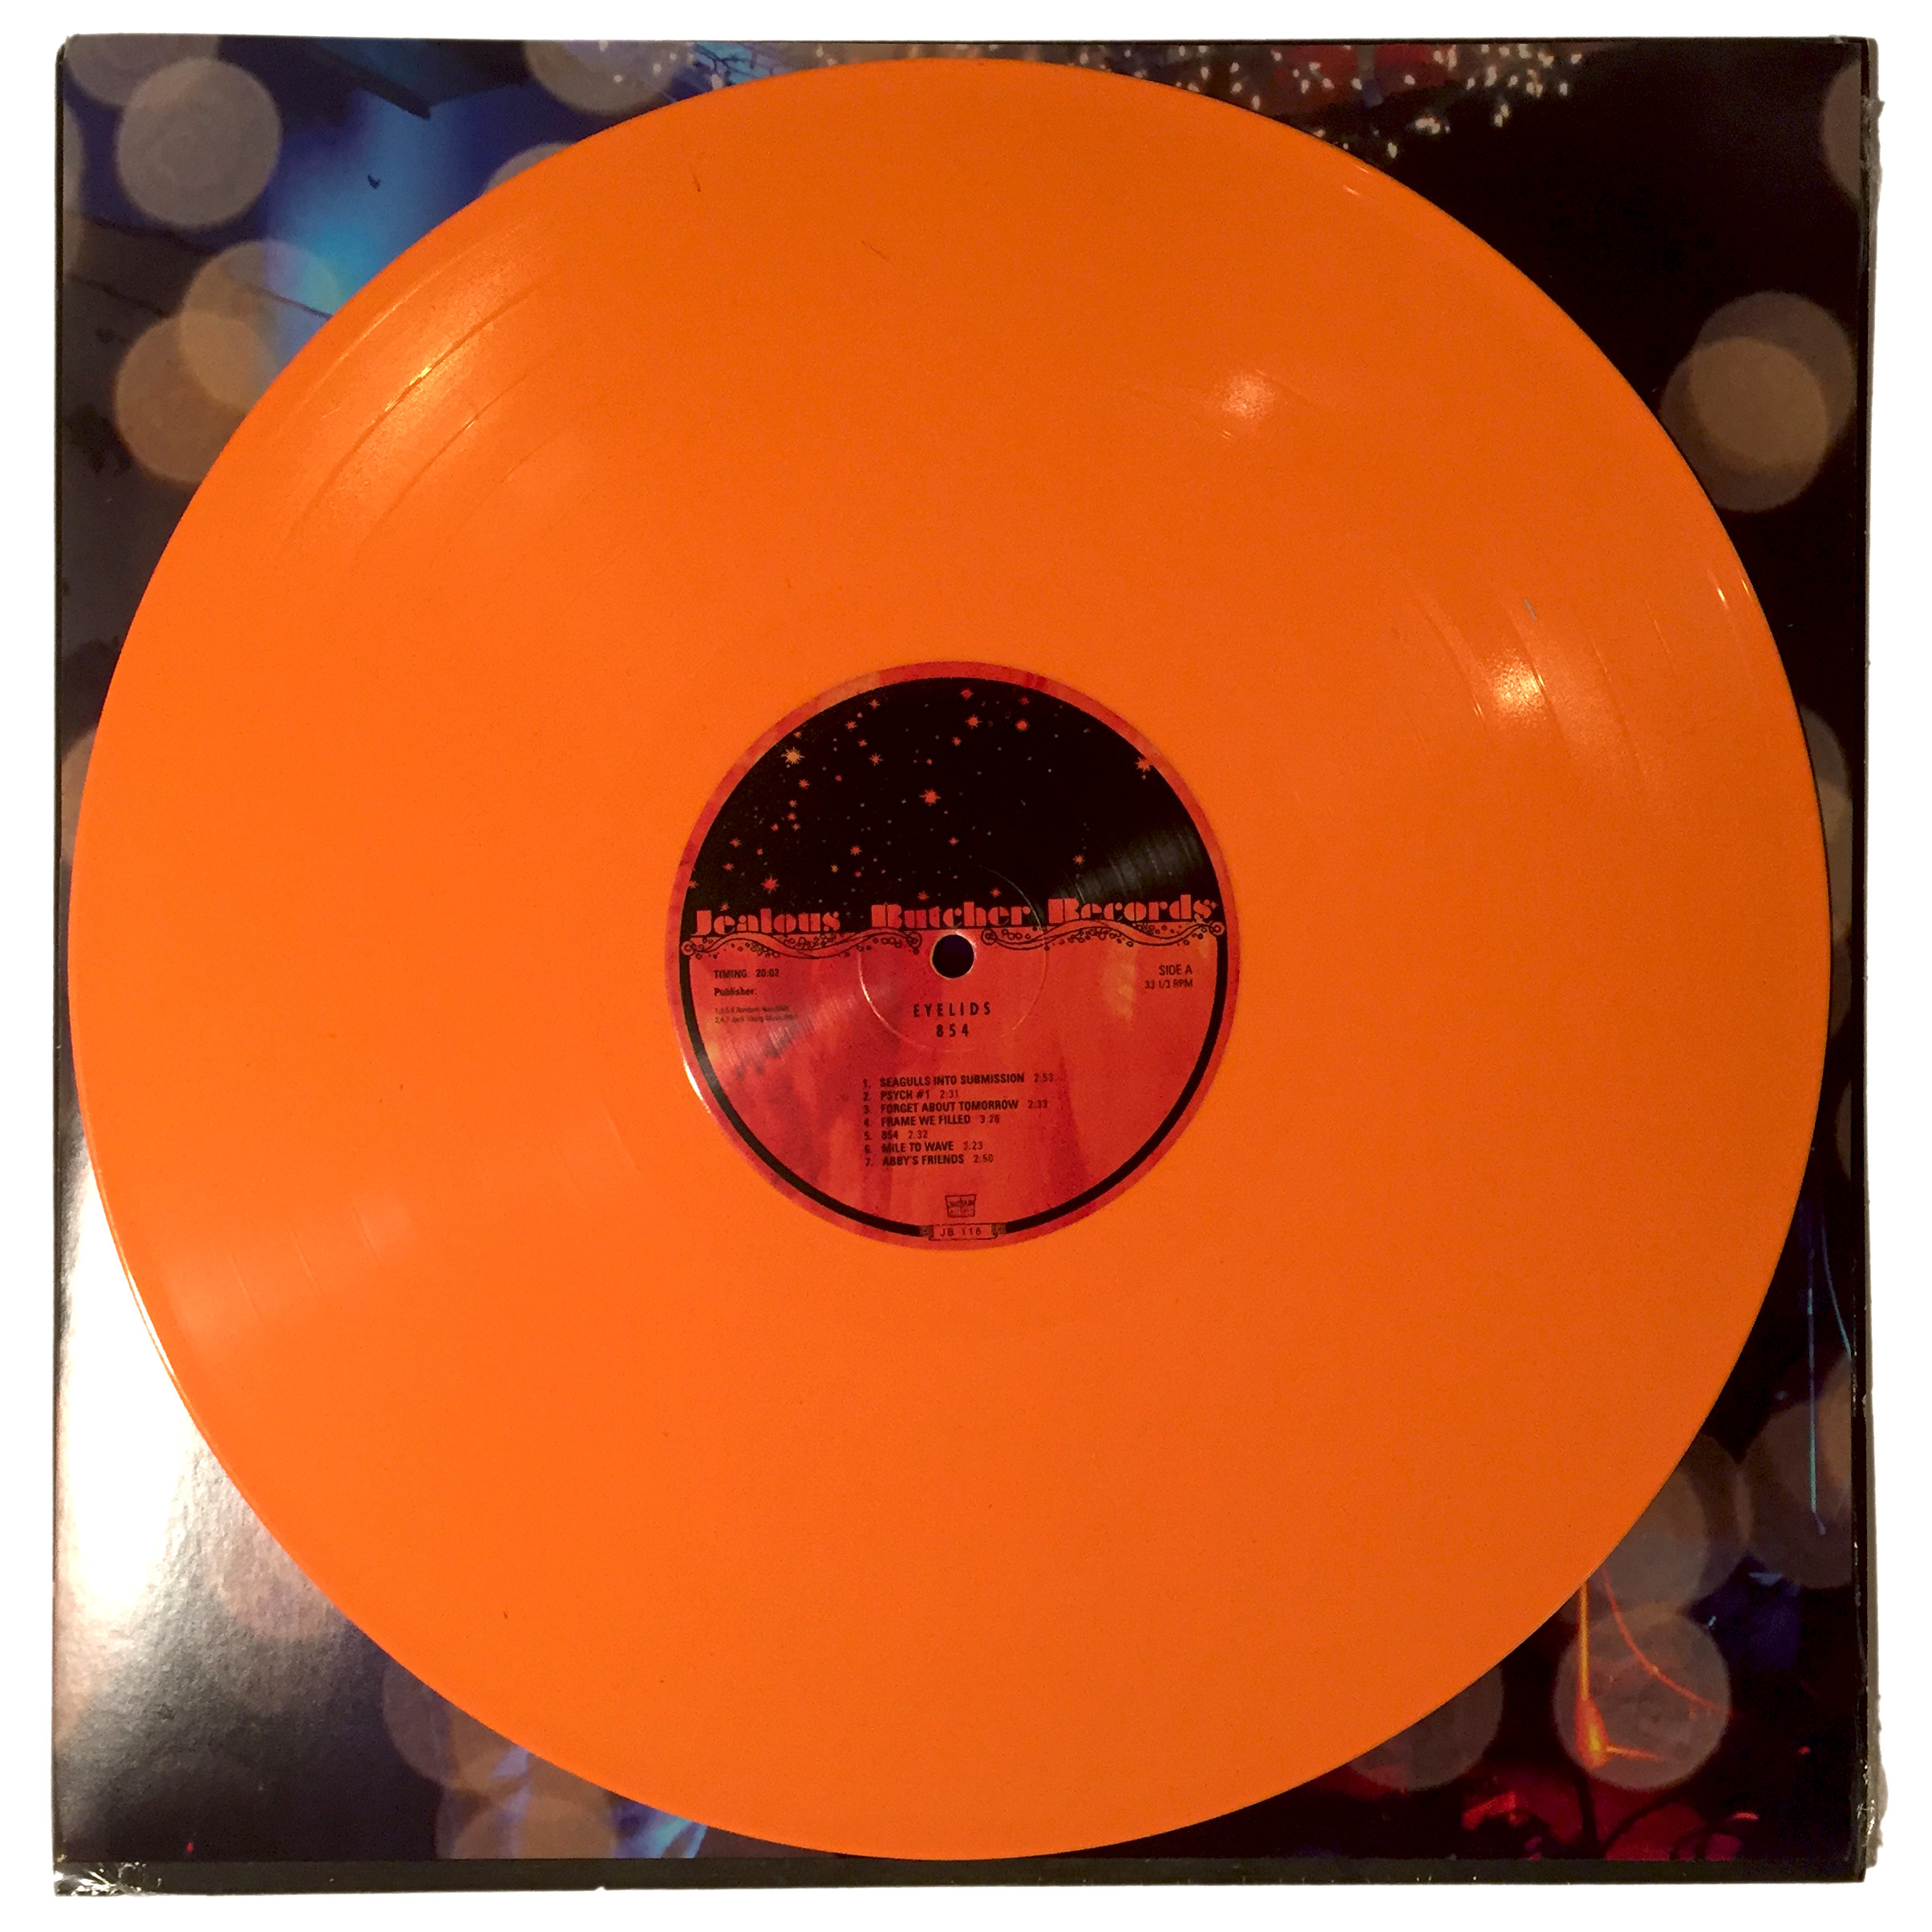 4TH PRESSING ORANGE VINYL!!!